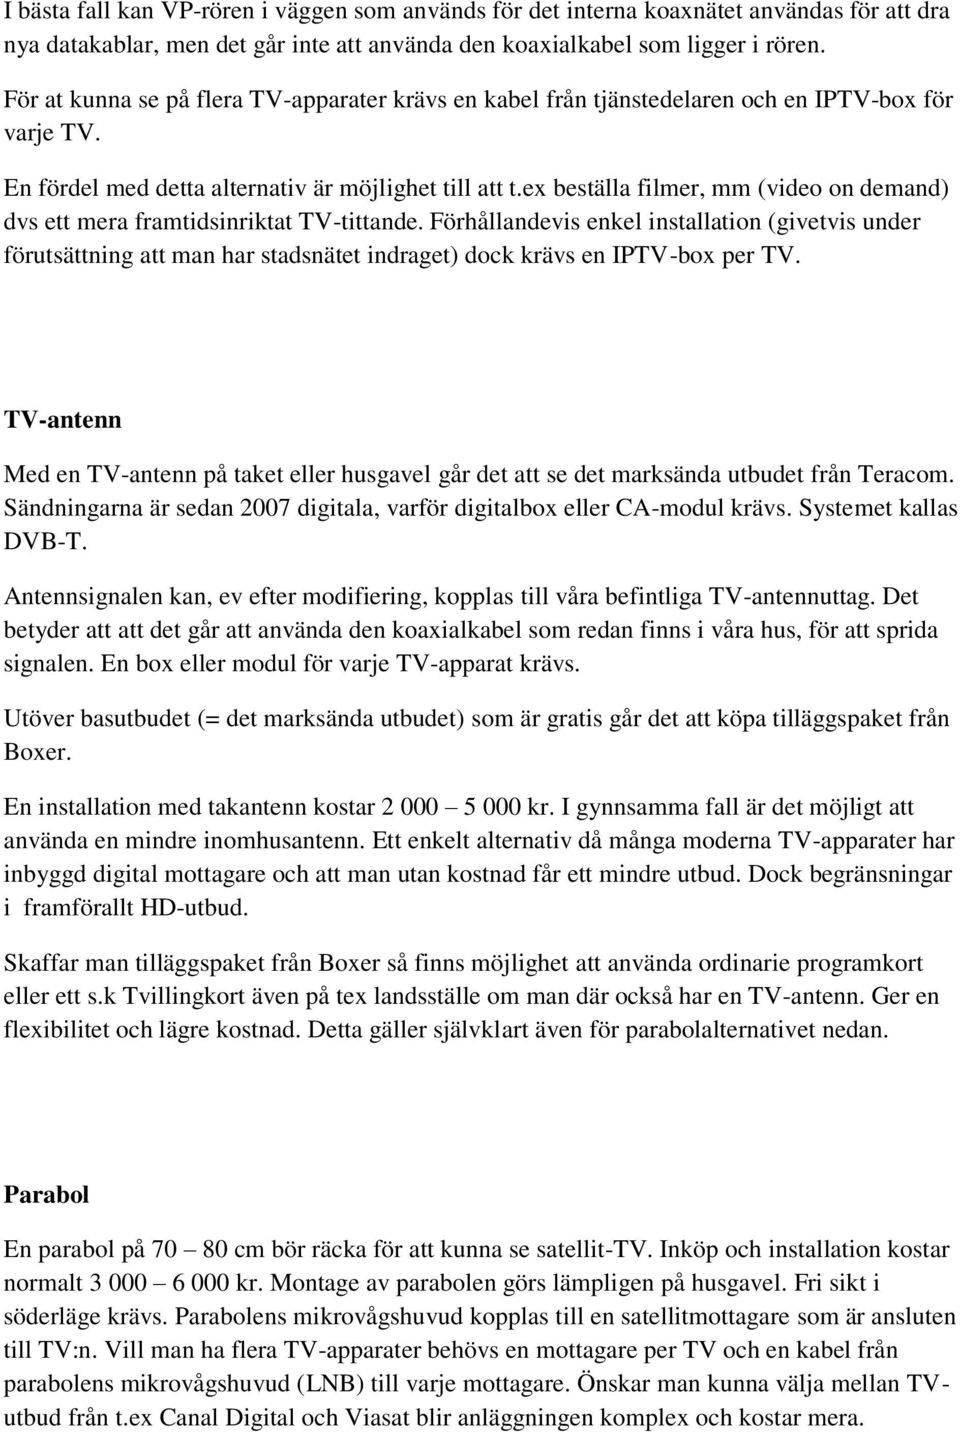 ex beställa filmer, mm (video on demand) dvs ett mera framtidsinriktat TV-tittande.